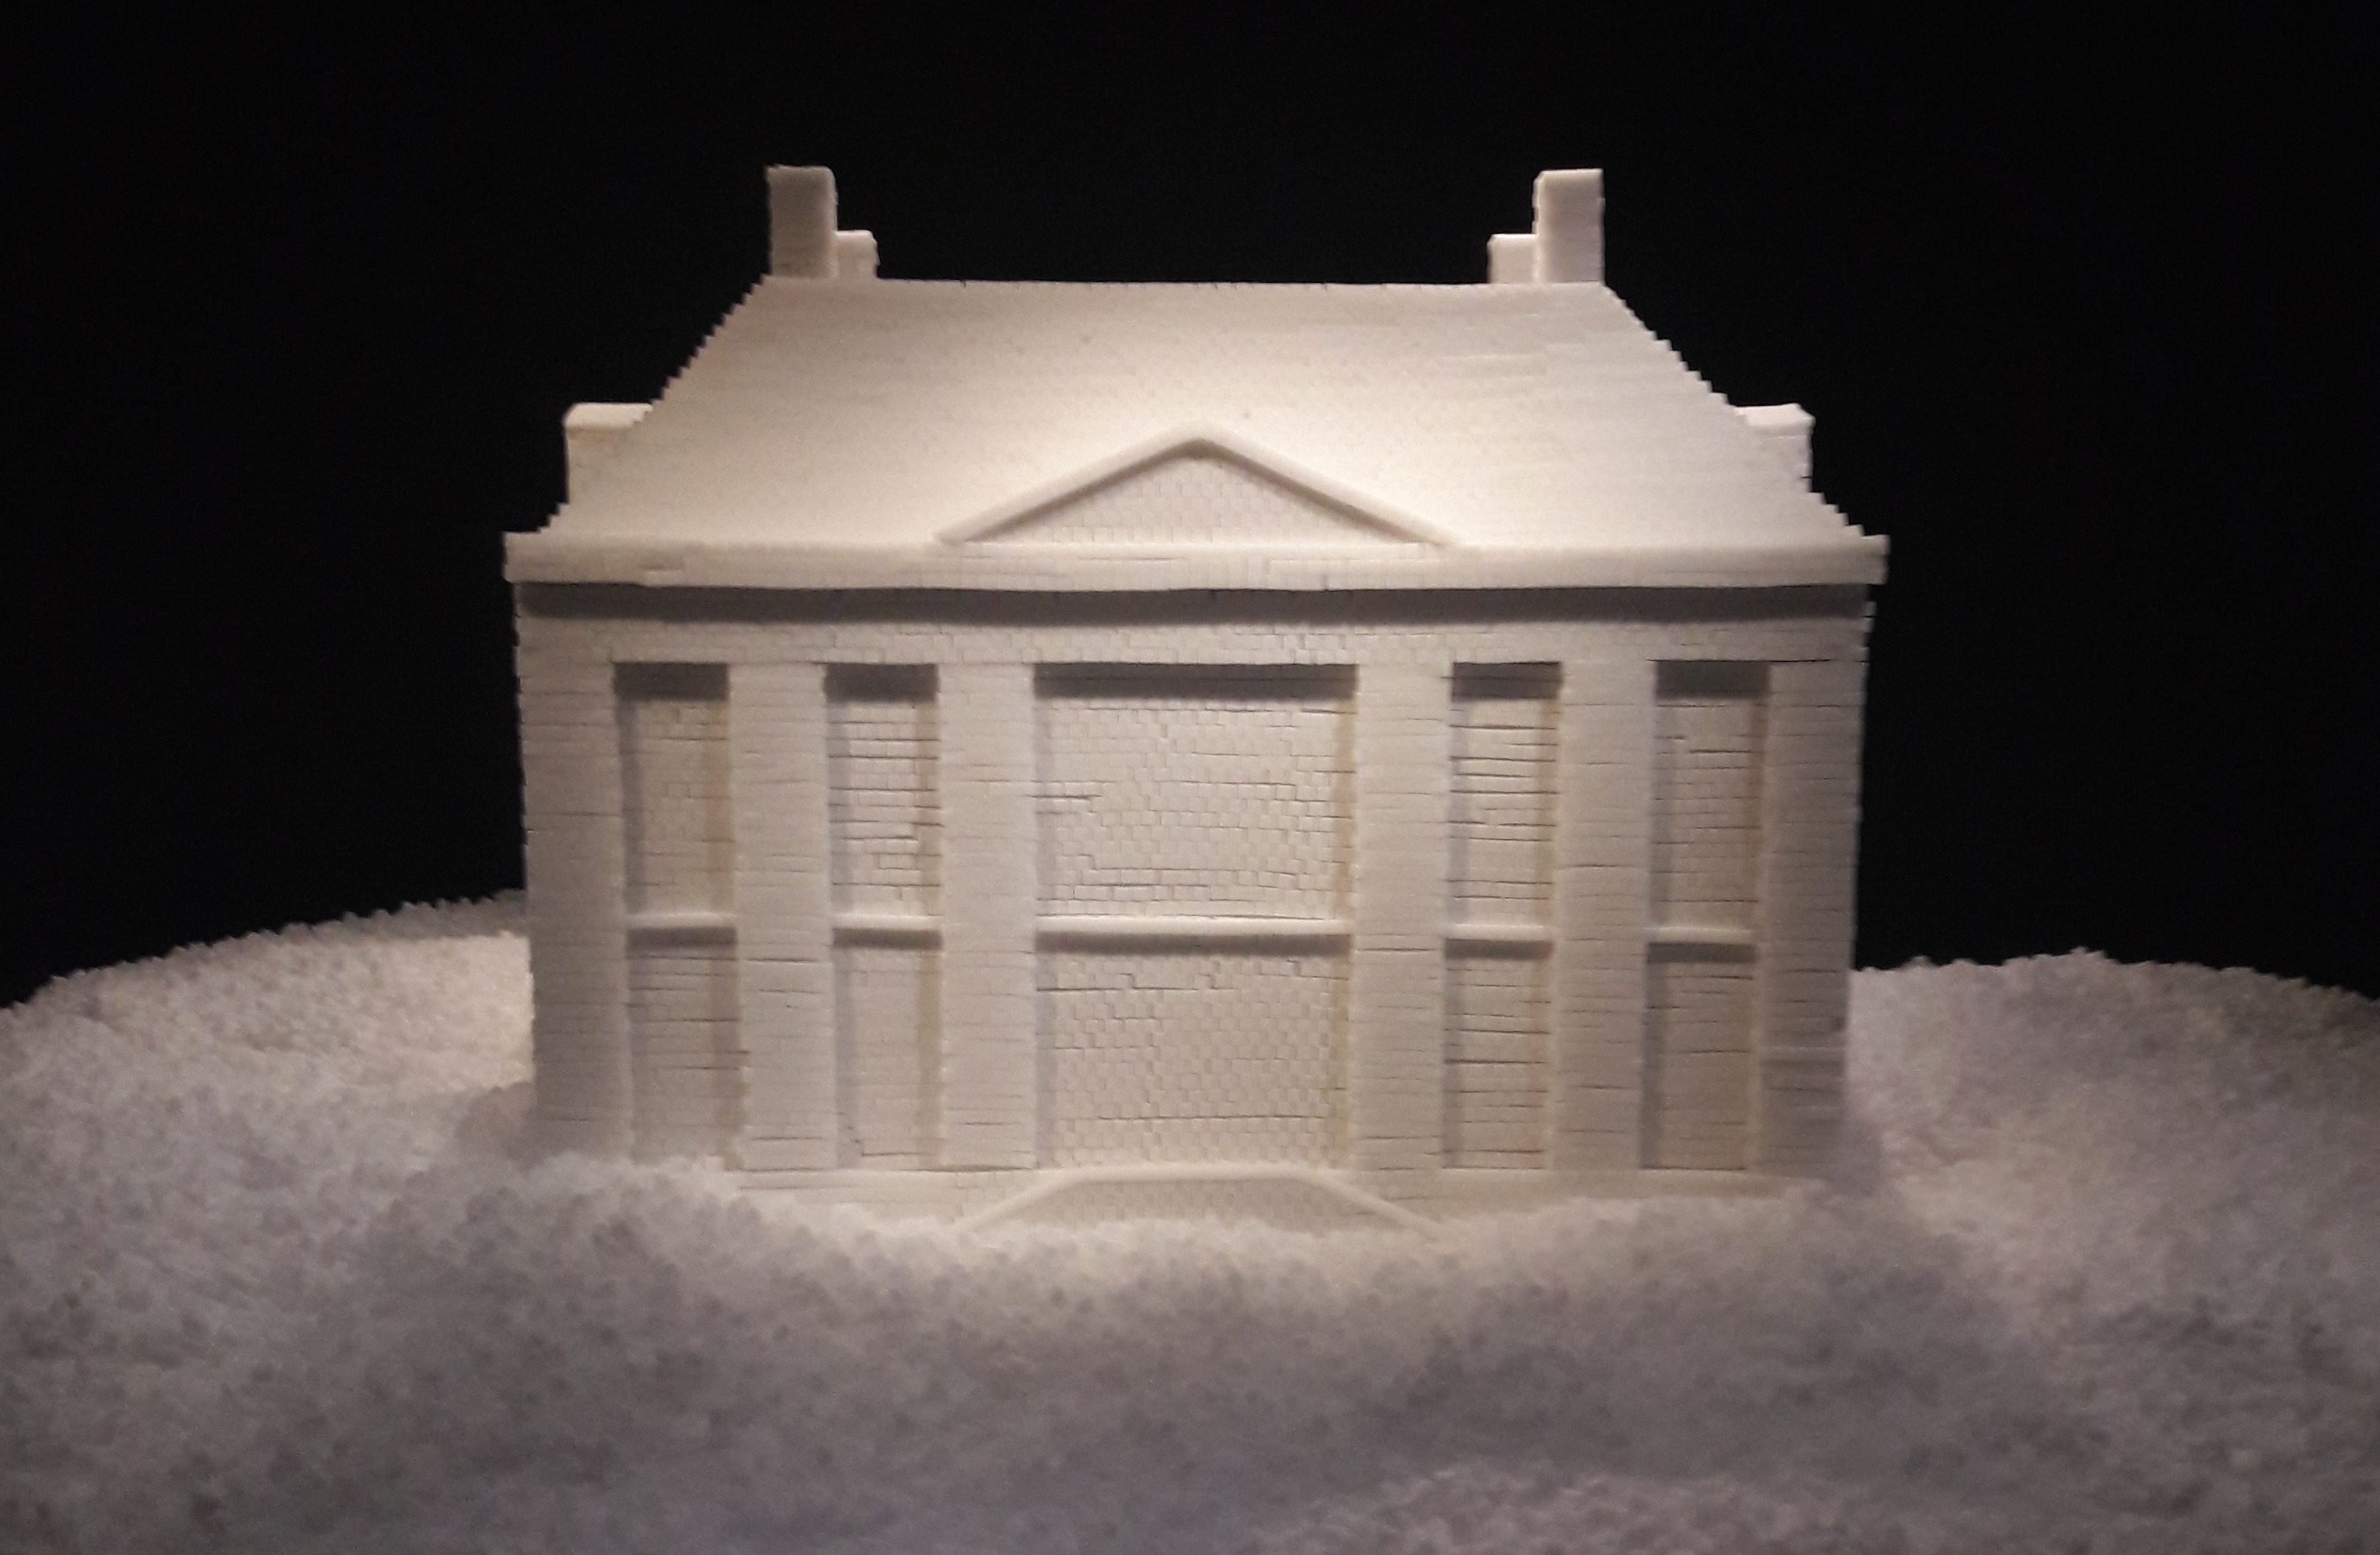 Model of Mauritshuis made of sugar cubes